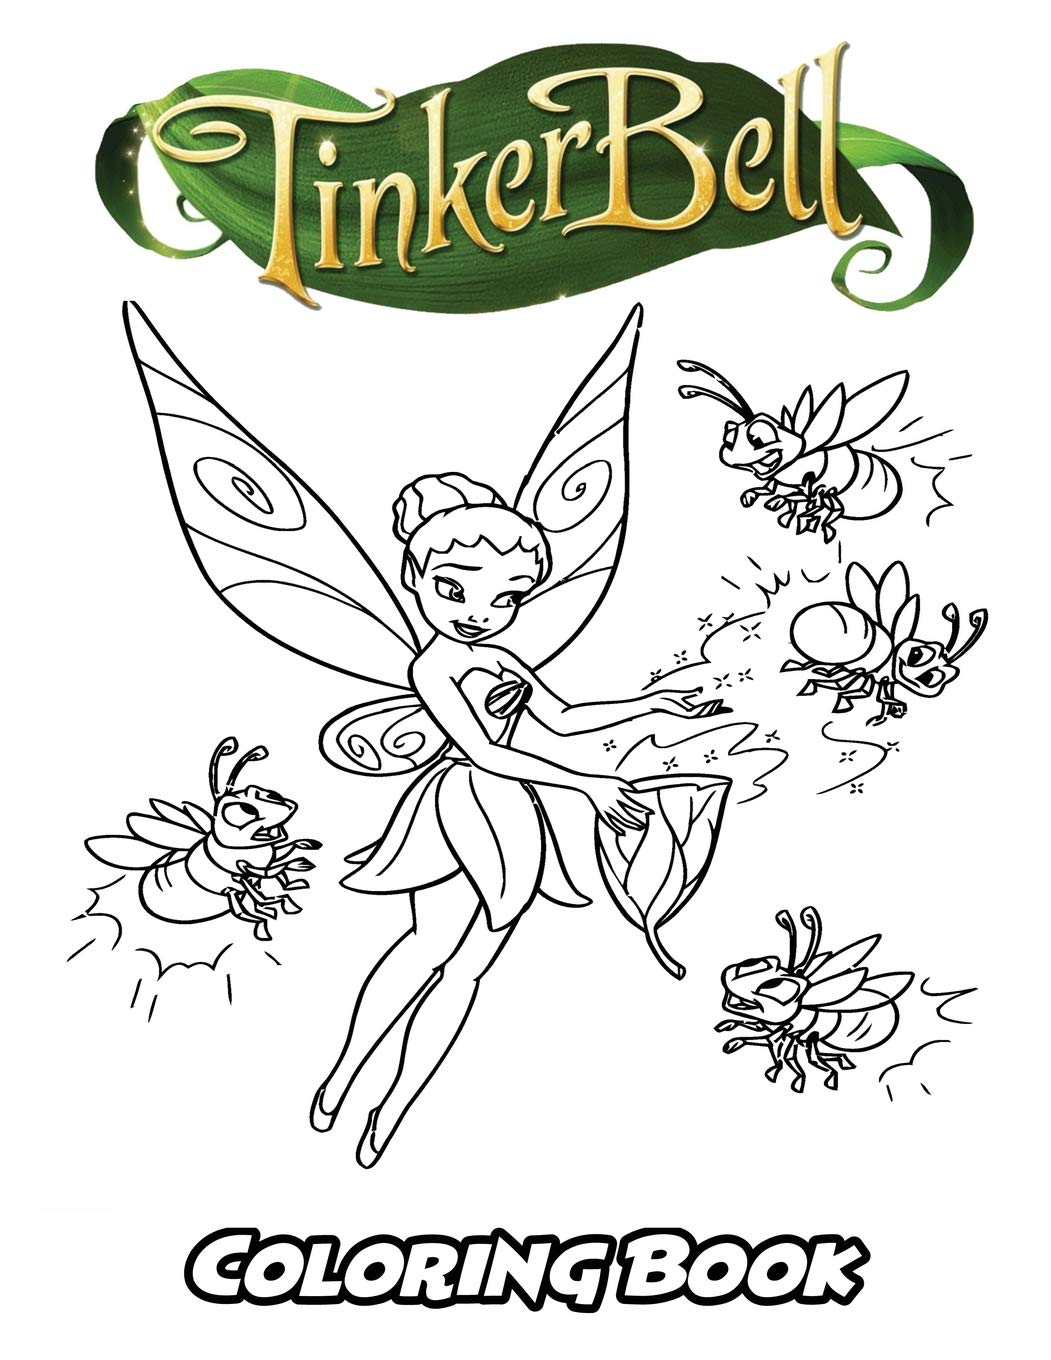 Tinkerbell Coloring Book: Coloring Book for Kids and Adults ...